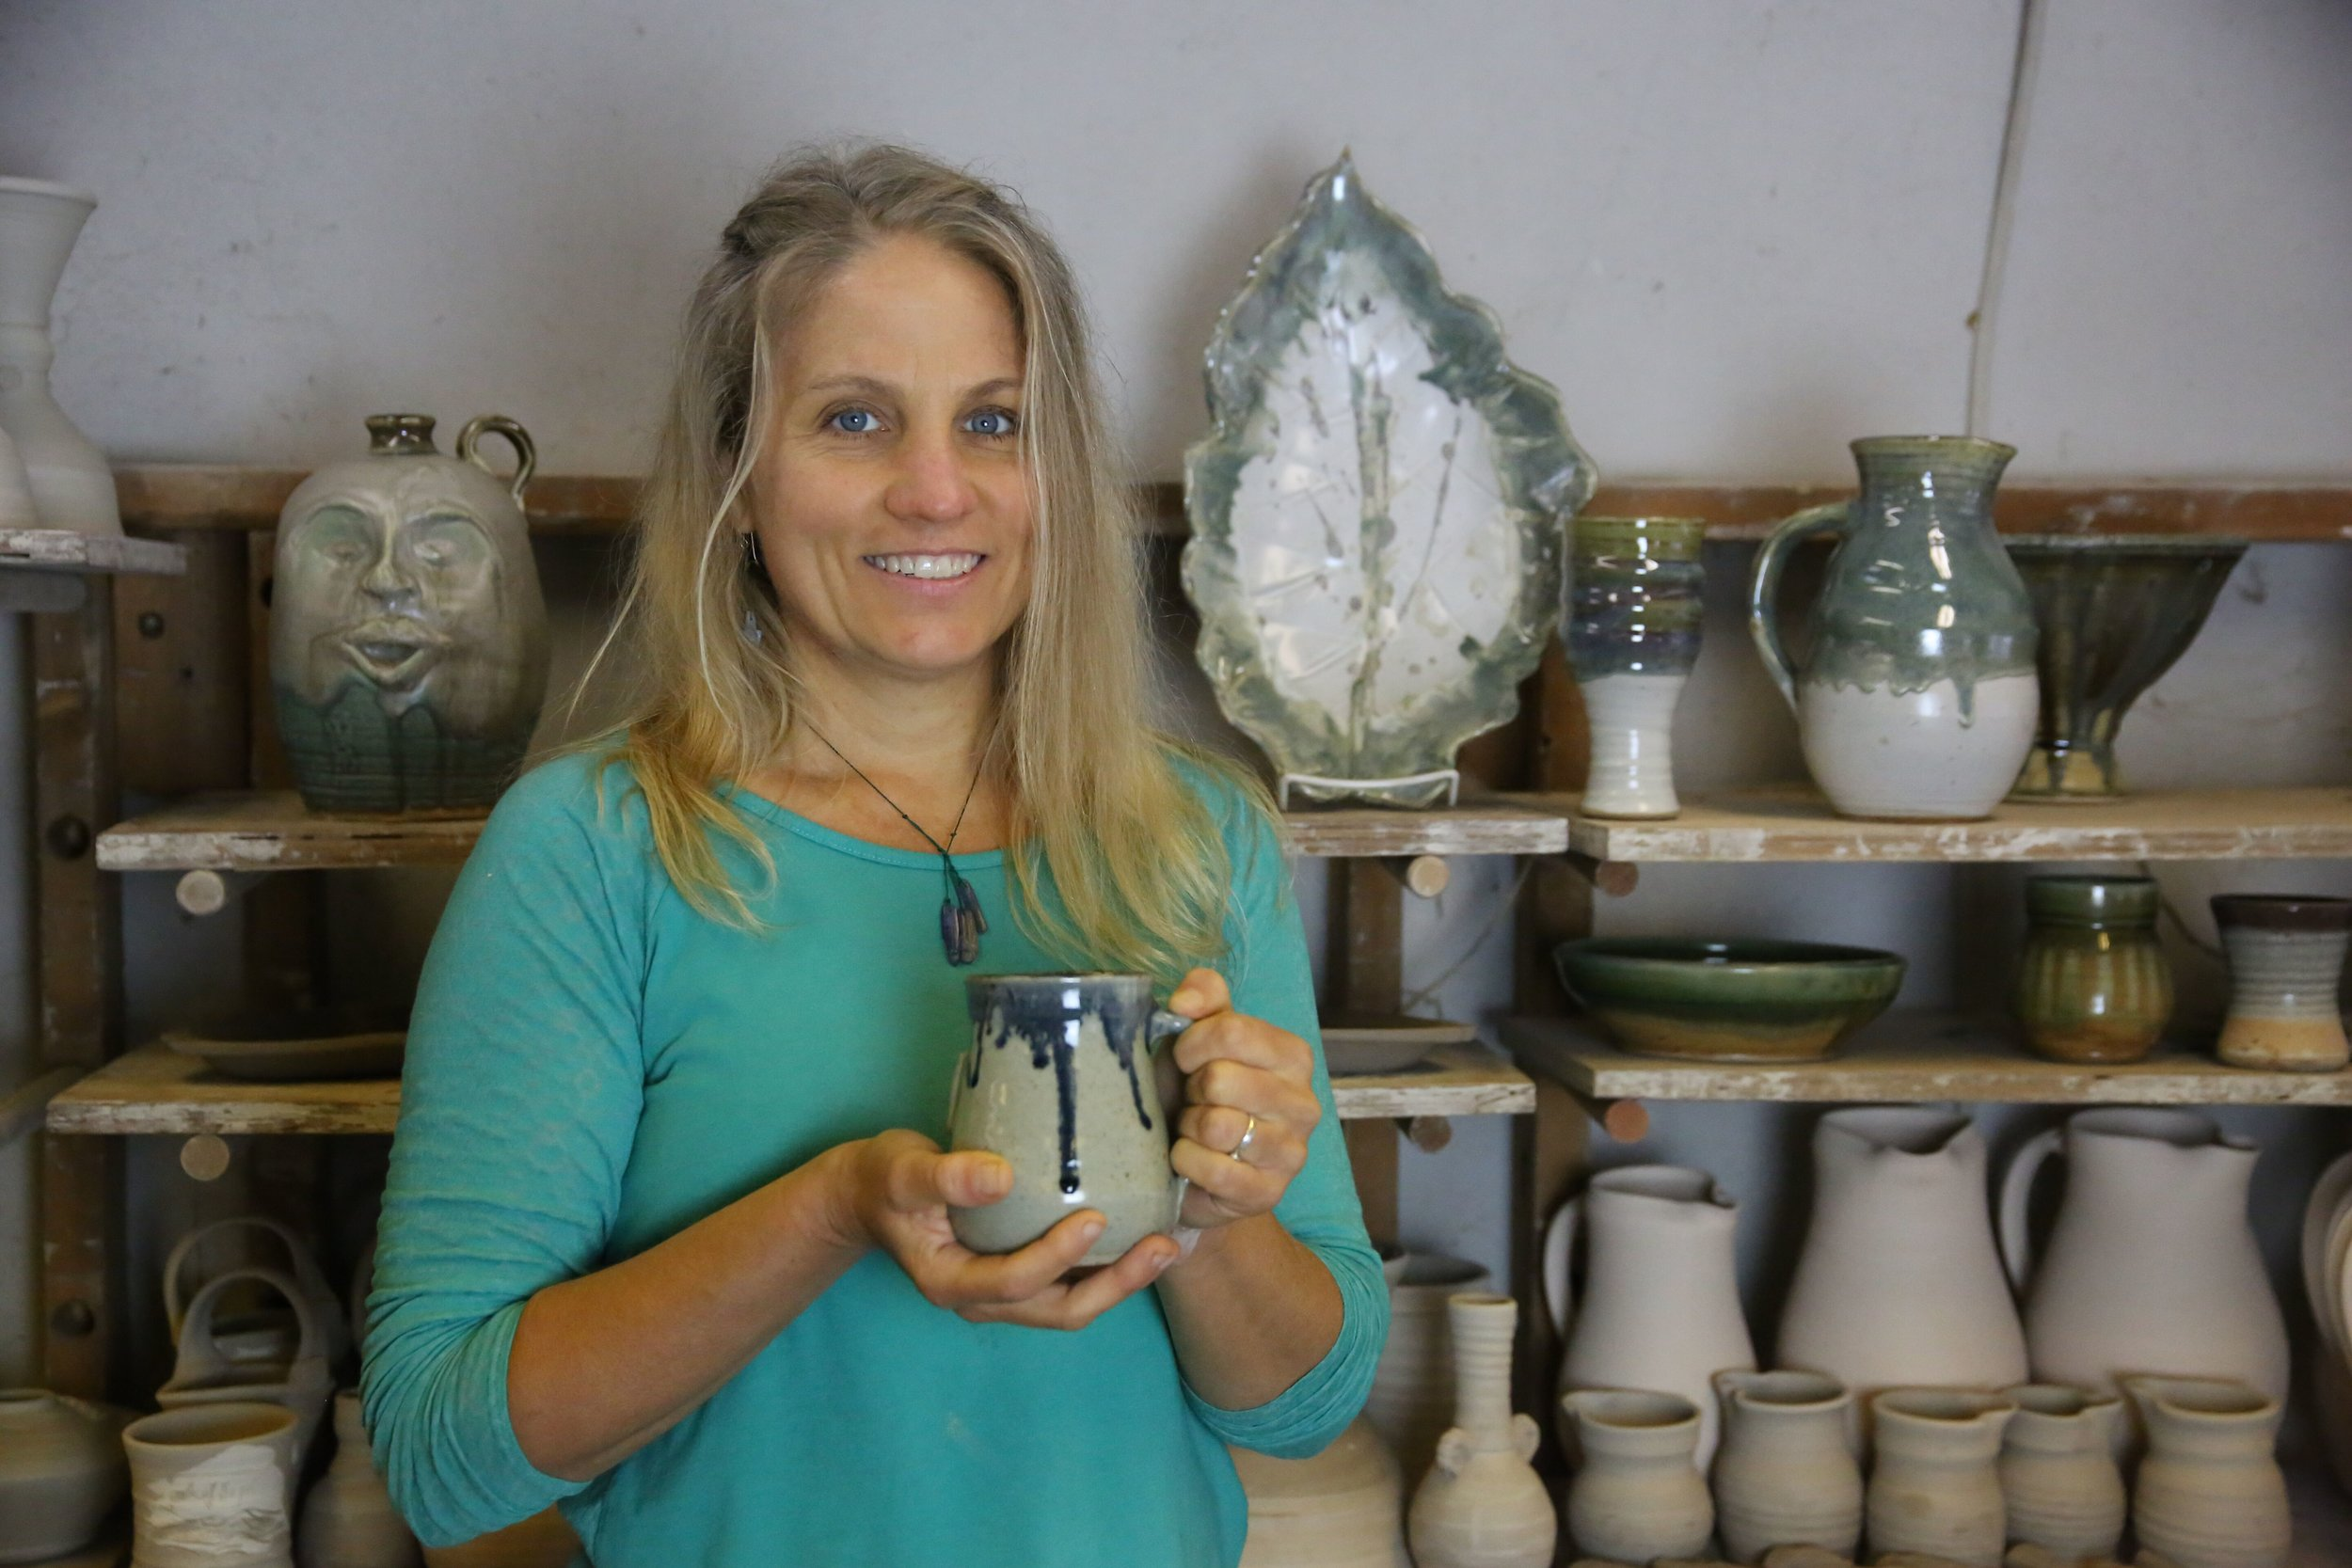 Betsy Ledbetter   Betsy began making pots in 1998 when she enrolled in a beginning wheel class at The Gibbes Museum of Art in Charleston, SC. At the time she was doing an Internship with the museum to complete requirements to graduate from The College of Charleston. After graduating, Betsy moved to the North of the state and eventually began commuting to White County where she had the privilege of using the studio of Jessie Meaders to begin cultivating what she had learned in the brief class at The Gibbes.